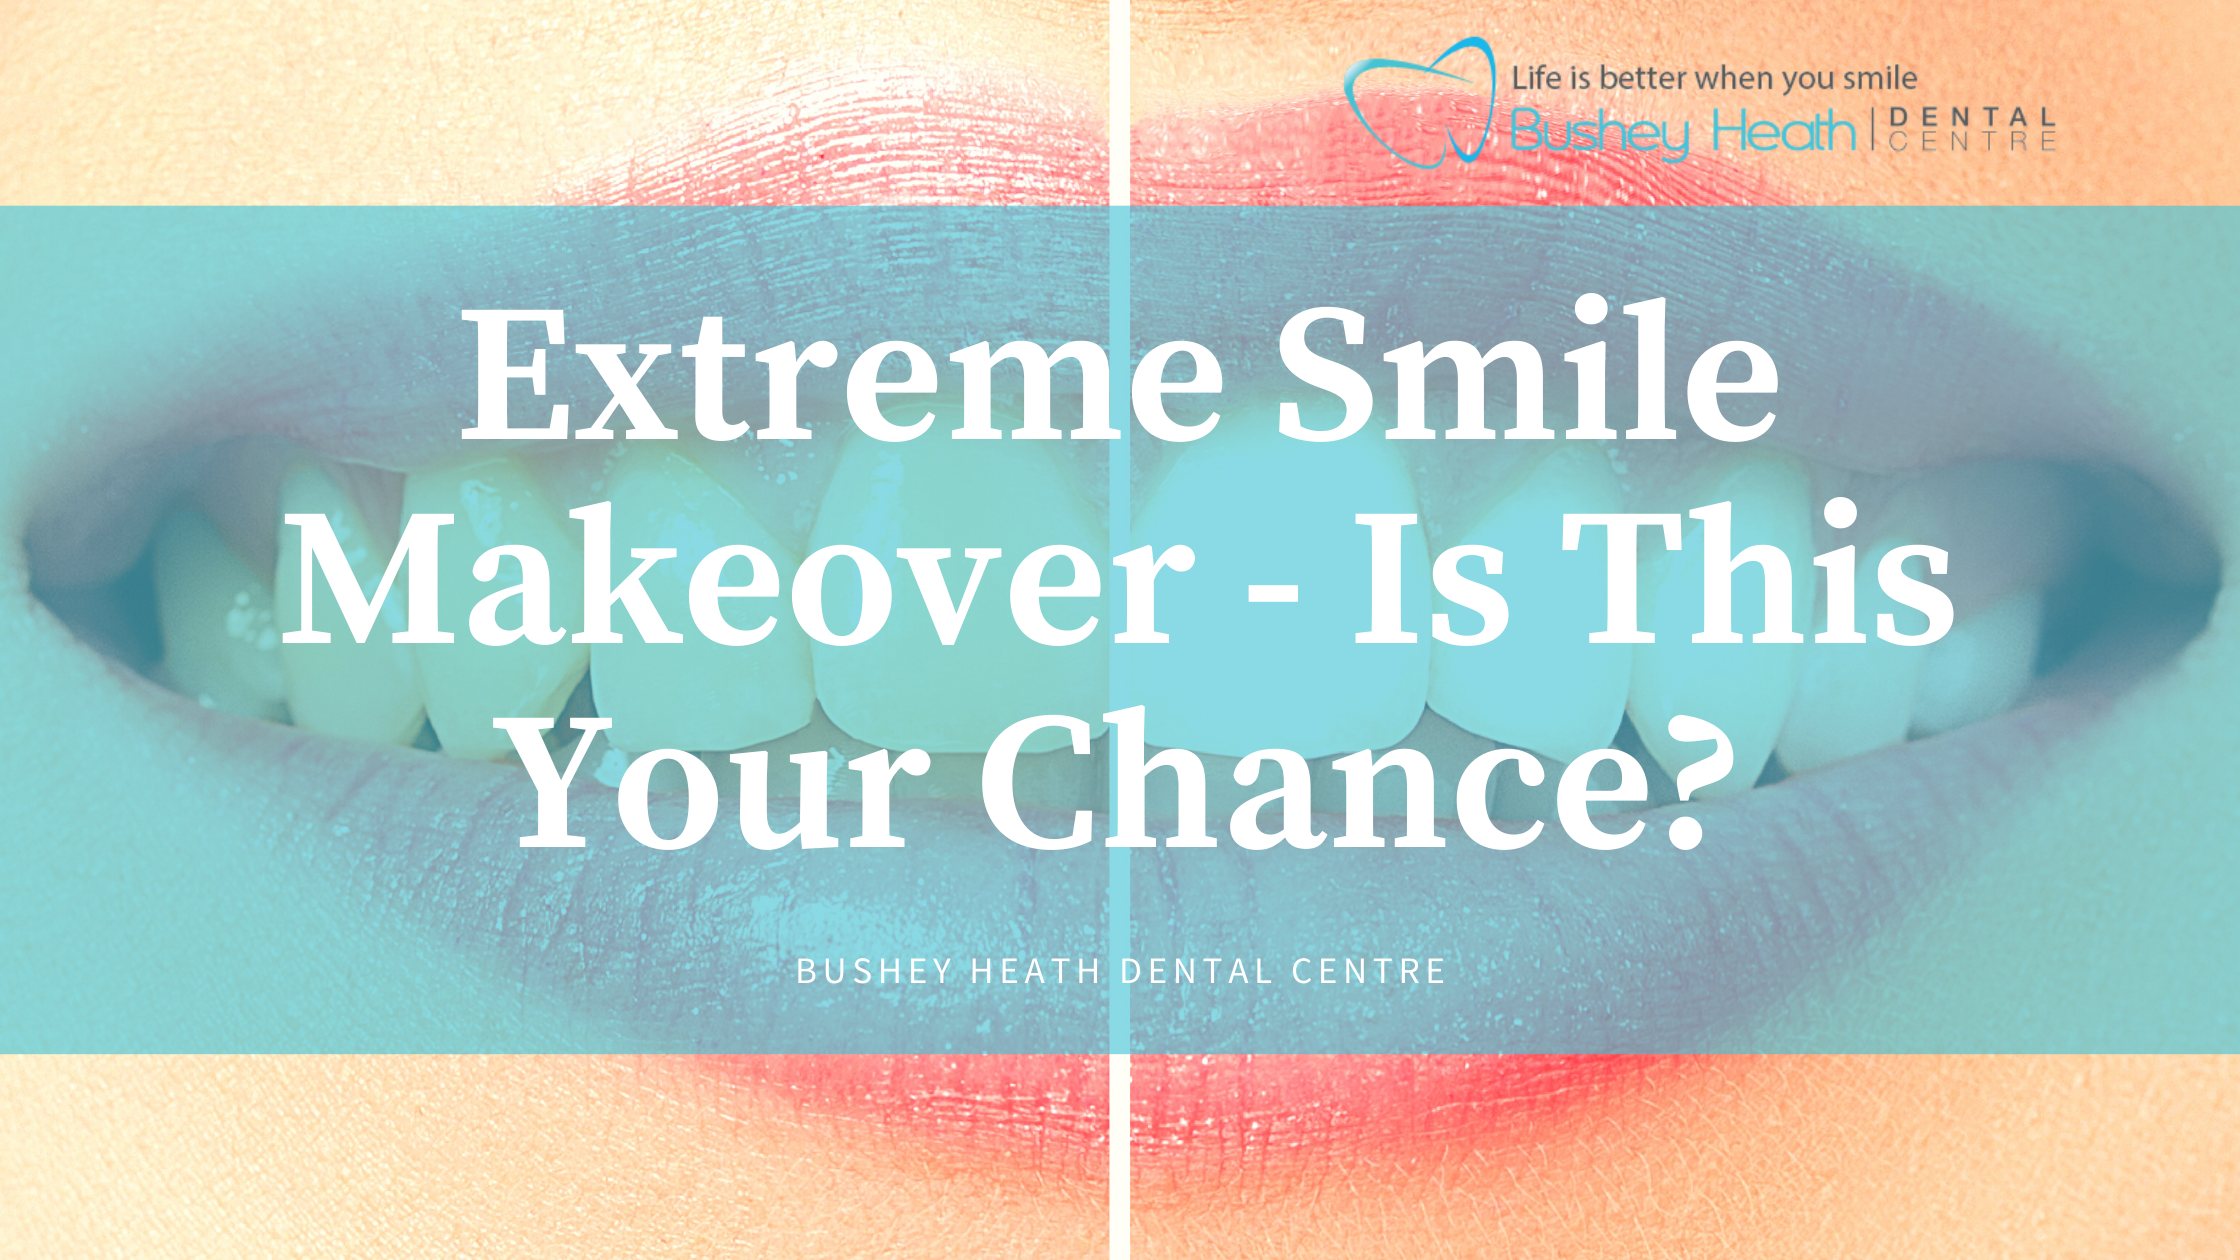 Extreme Smile Makeover - Is This Your Chance?